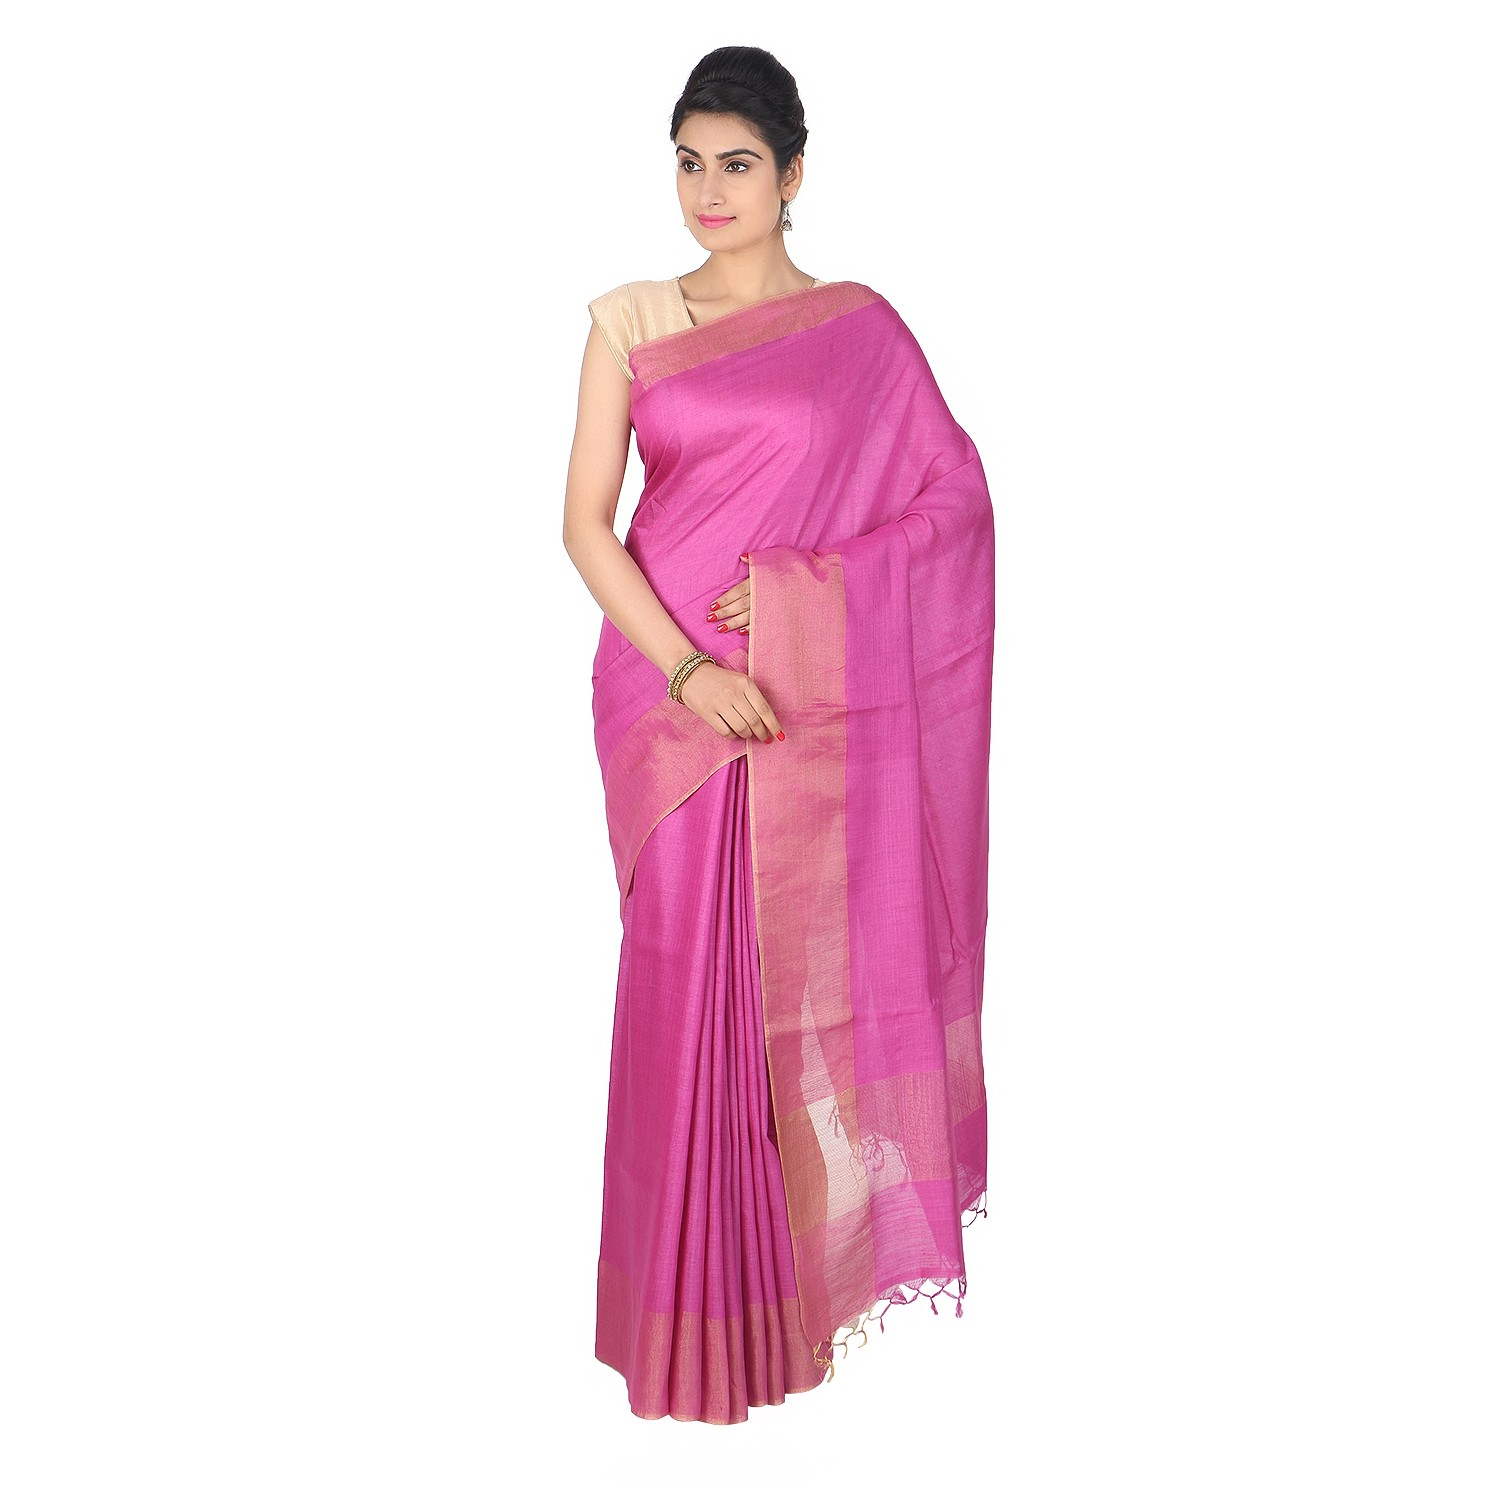 Handmade Pink Munga Tussar Silk Saree by Weavers of Bihar